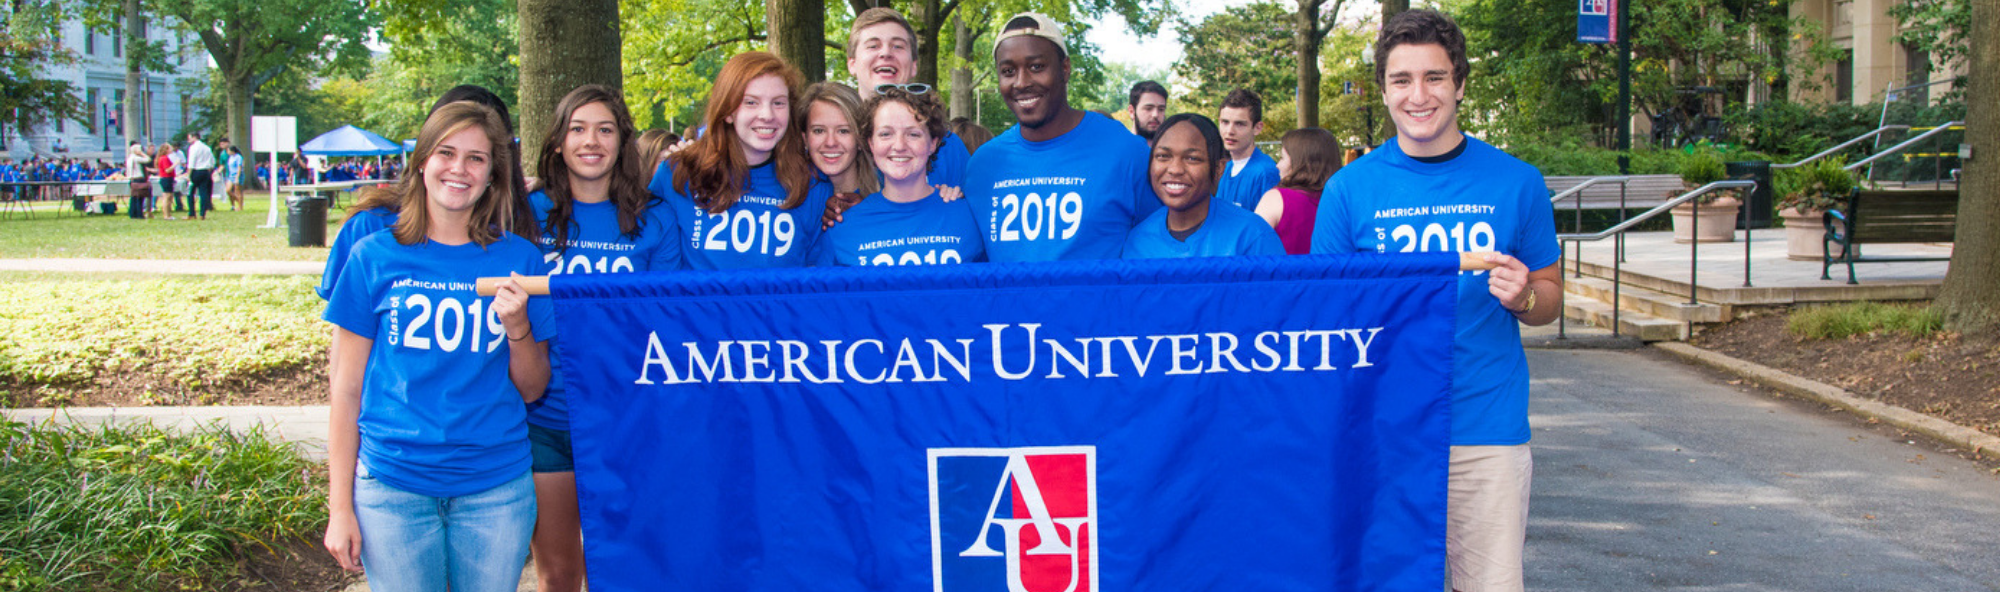 Banner Image for - American University Crowdfunding